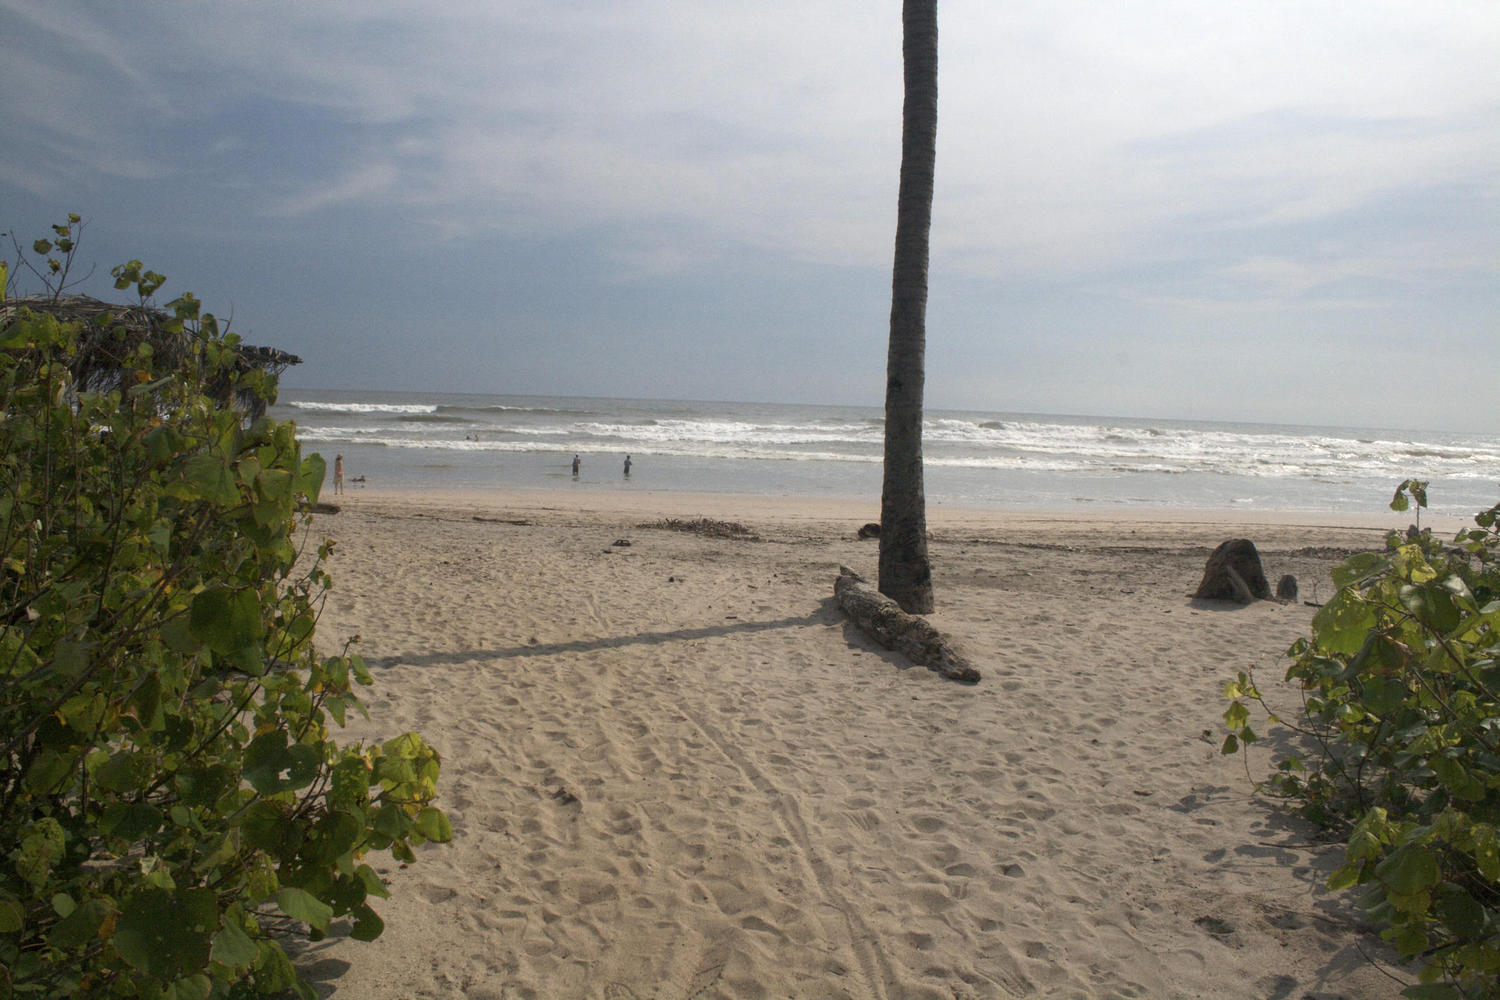 The beach at Nosara, Costa Rica